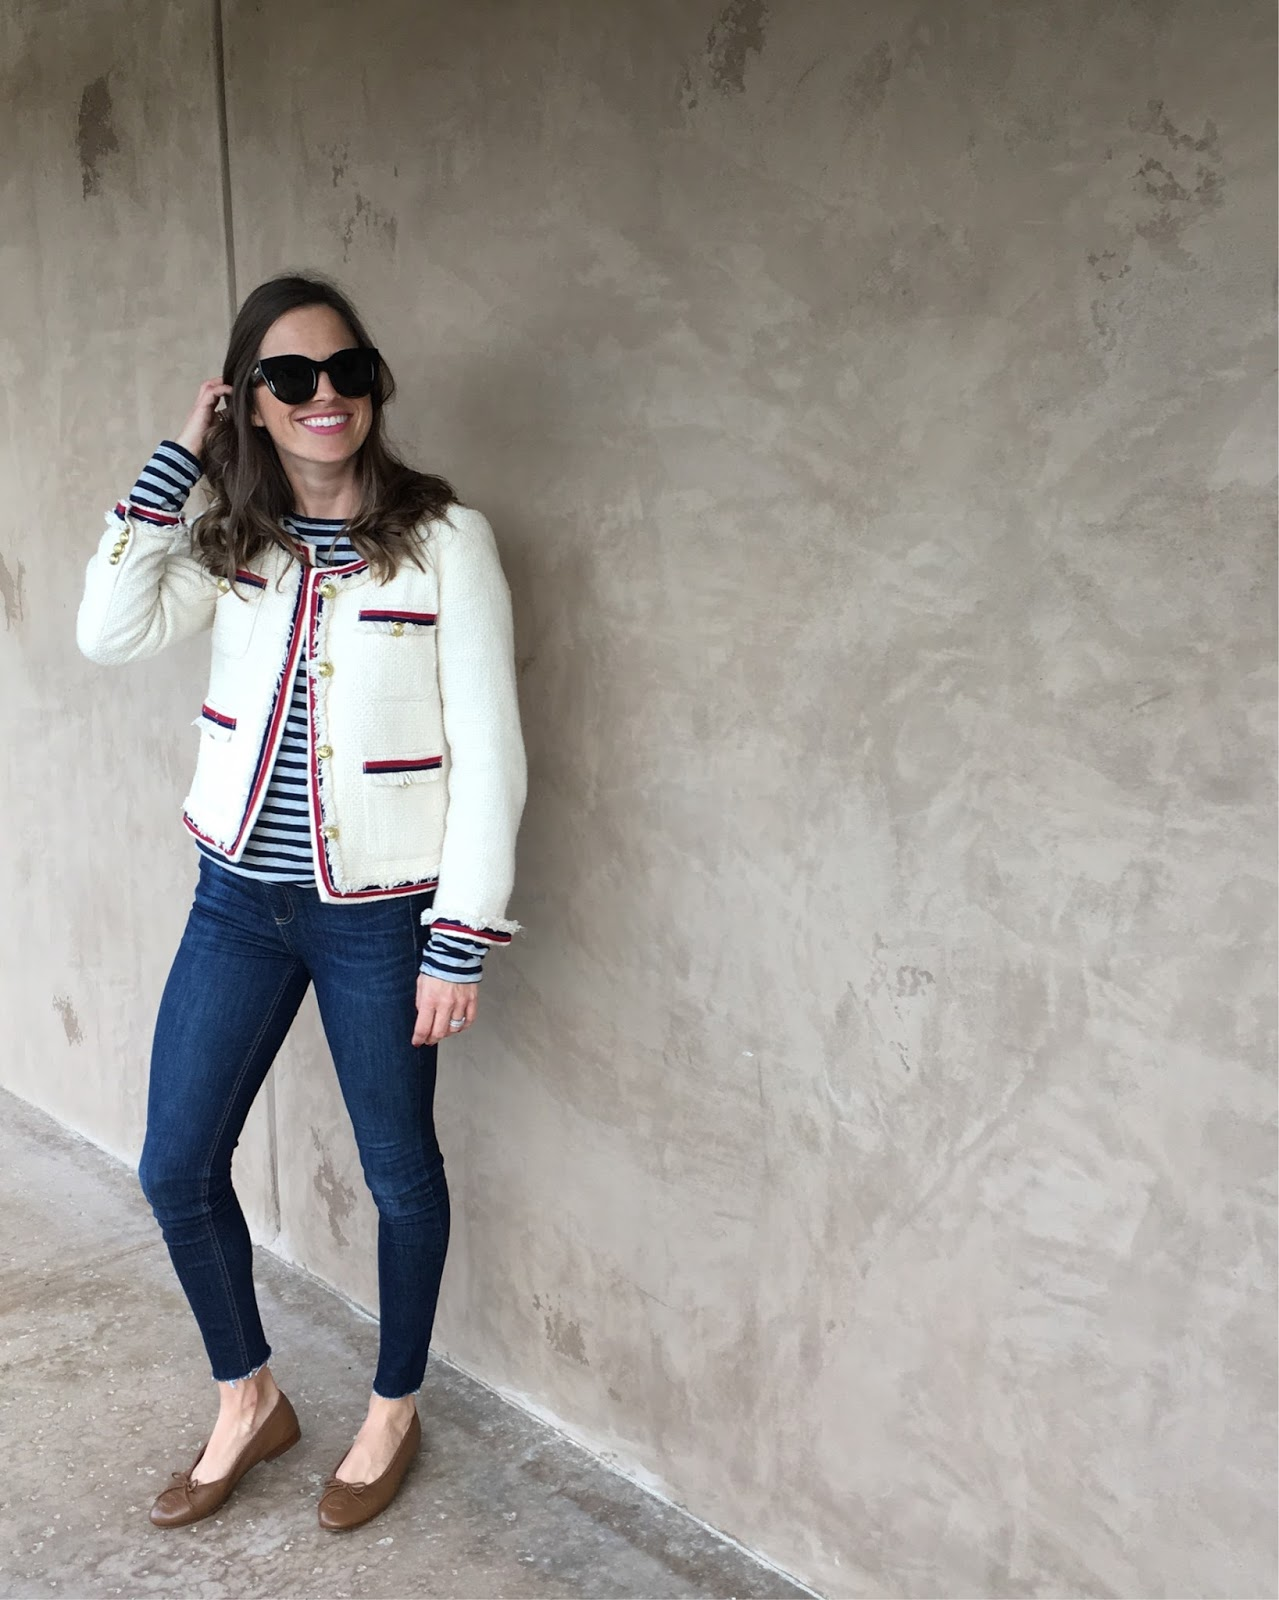 tweed jacket and jeans outfit